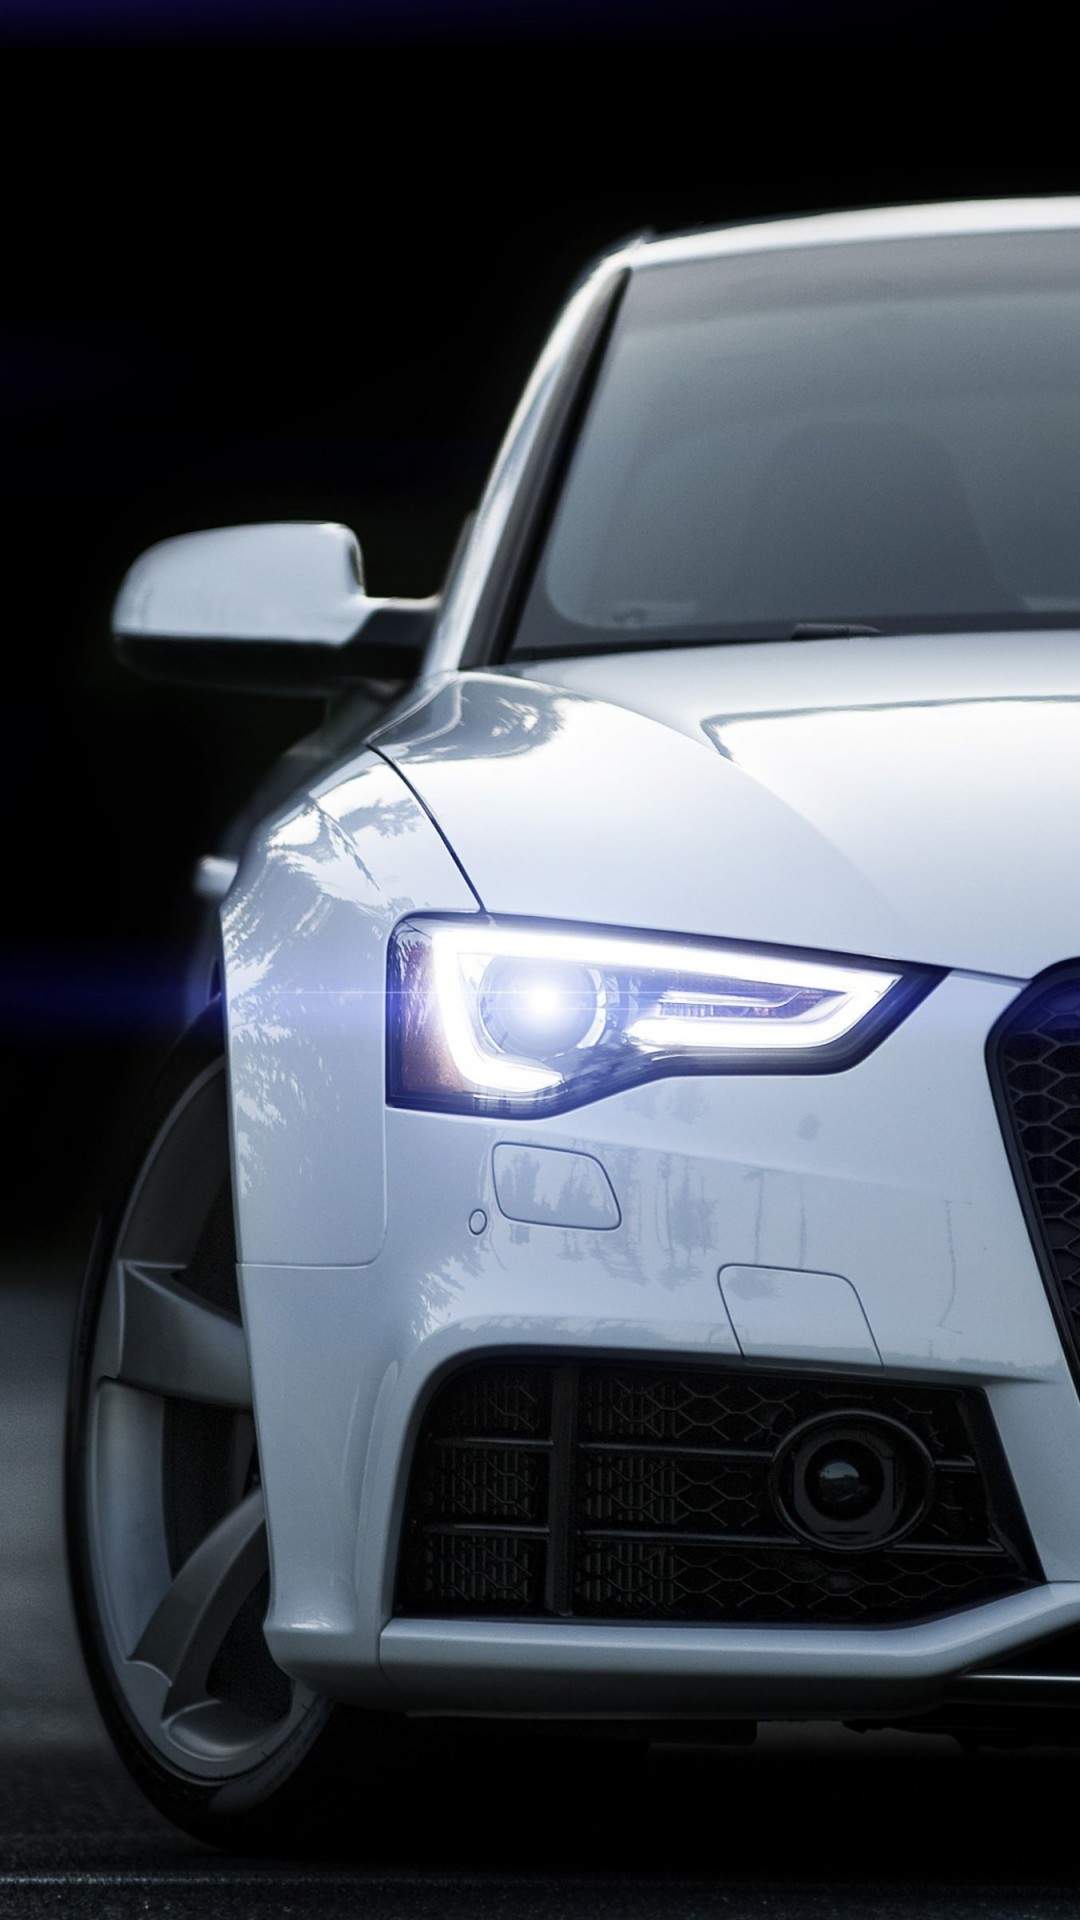 2015 Audi RS 5 Coupe Wallpaper for HTC One